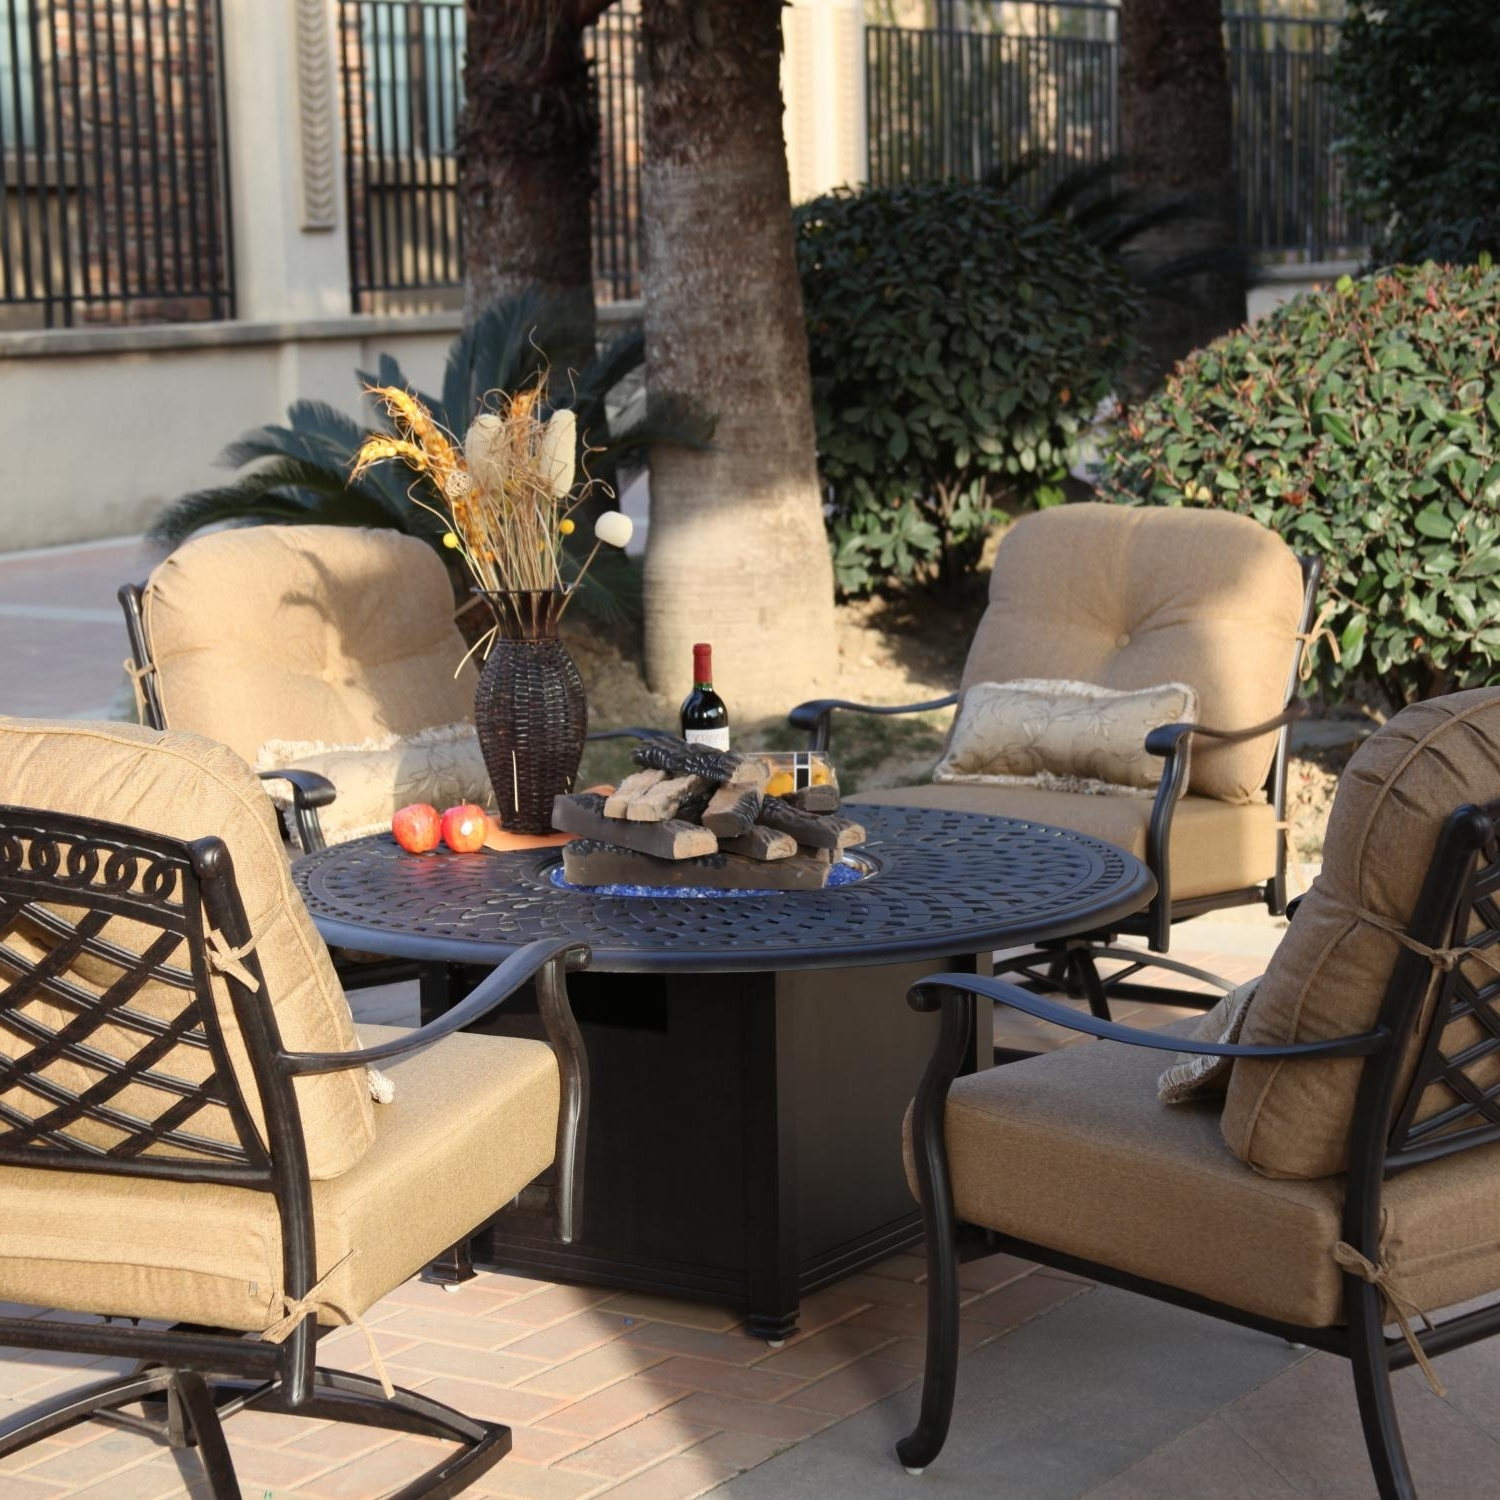 5 Piece Patio Conversation Sets Regarding Well Liked Darlee Sedona 5 Piece Aluminum Patio Fire Pit Seating Set (View 6 of 20)